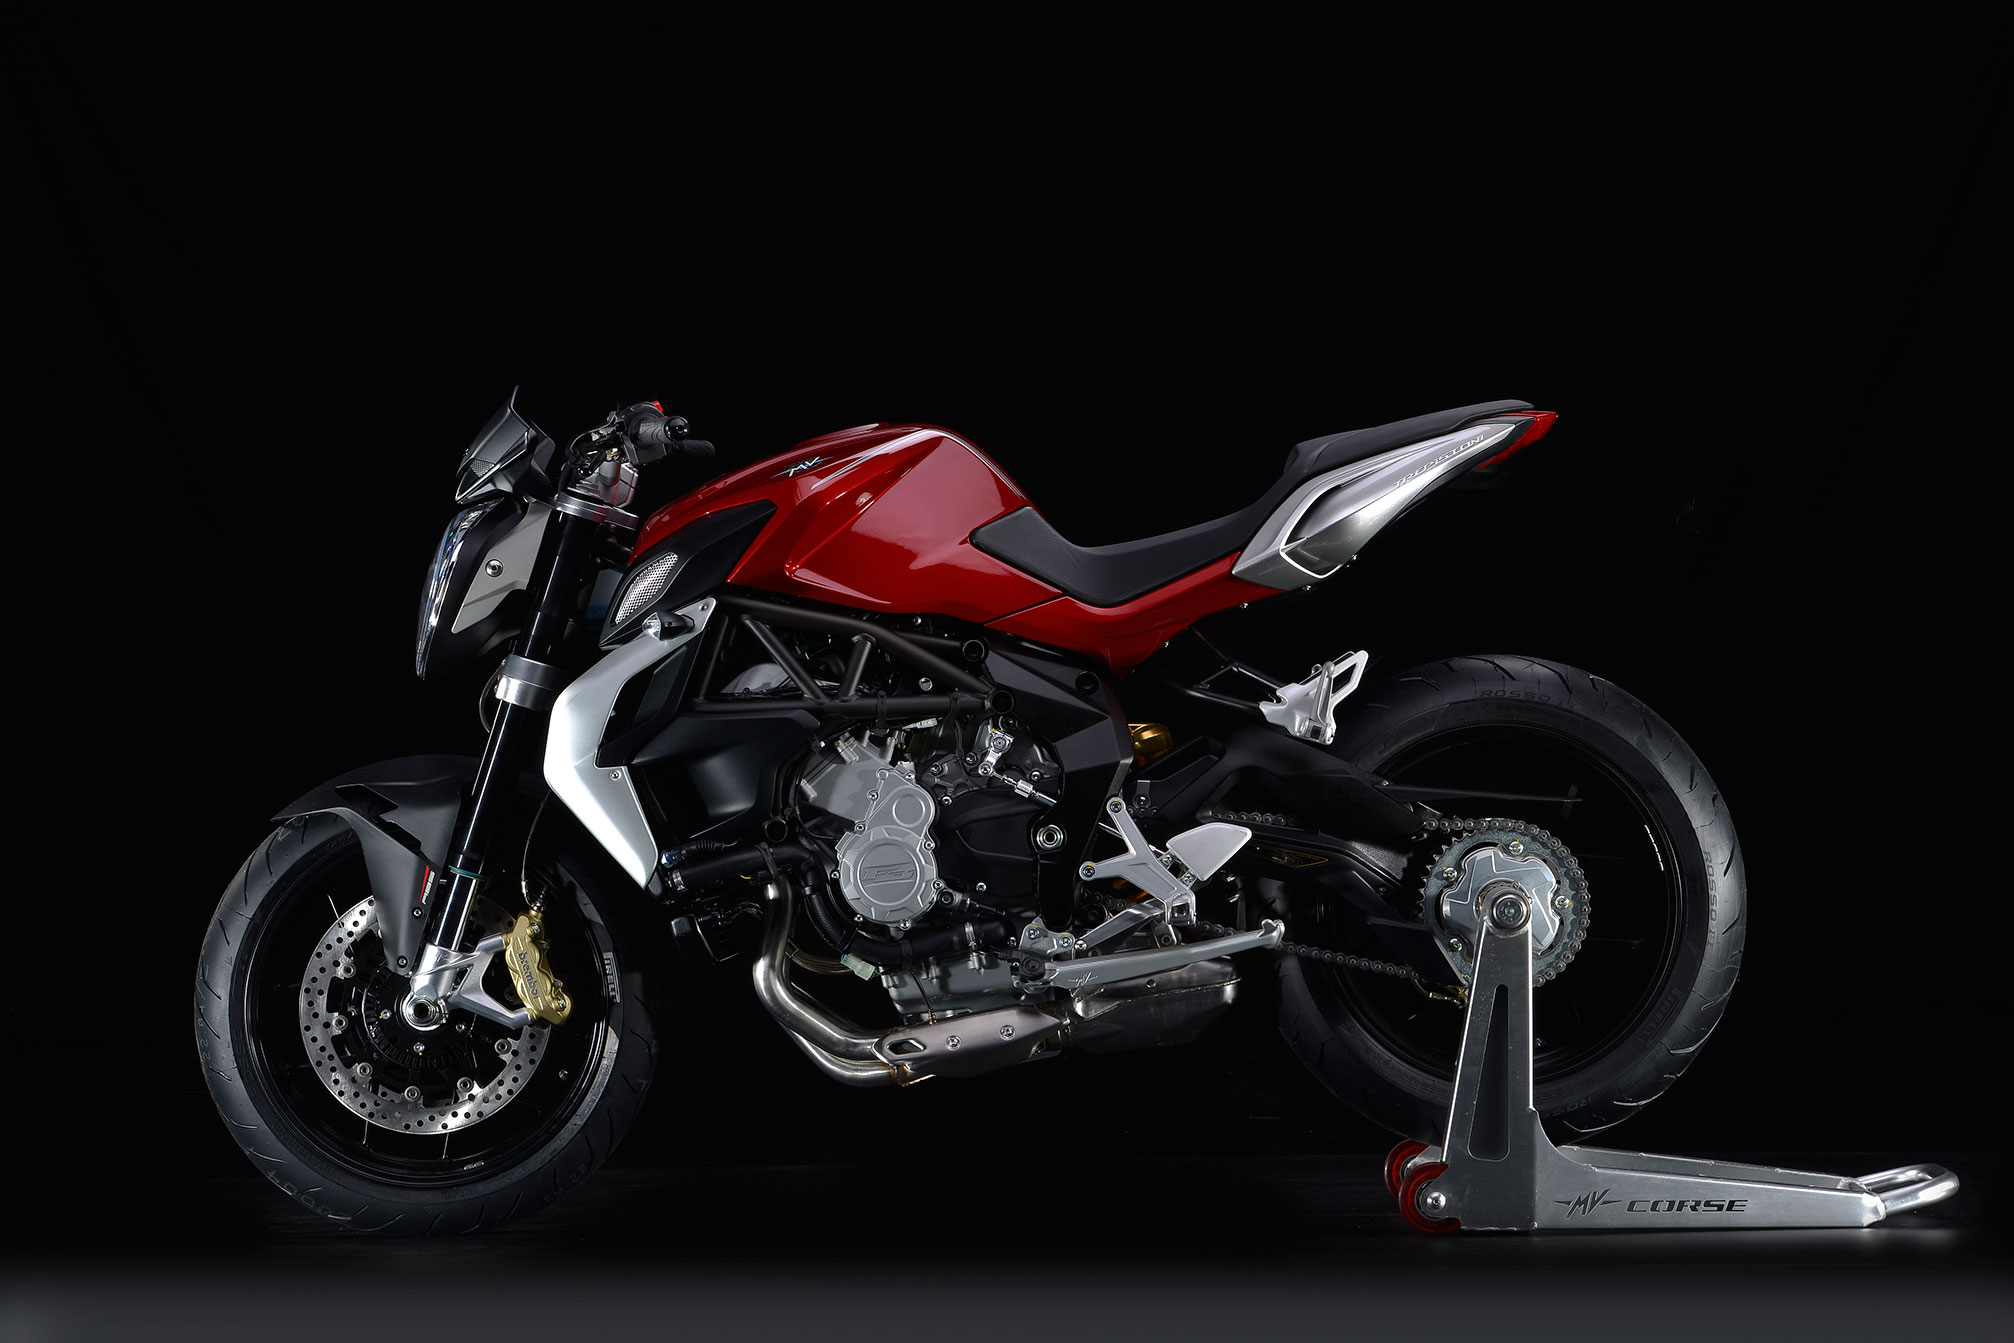 2014 MV Agusta Brutale 800 Review